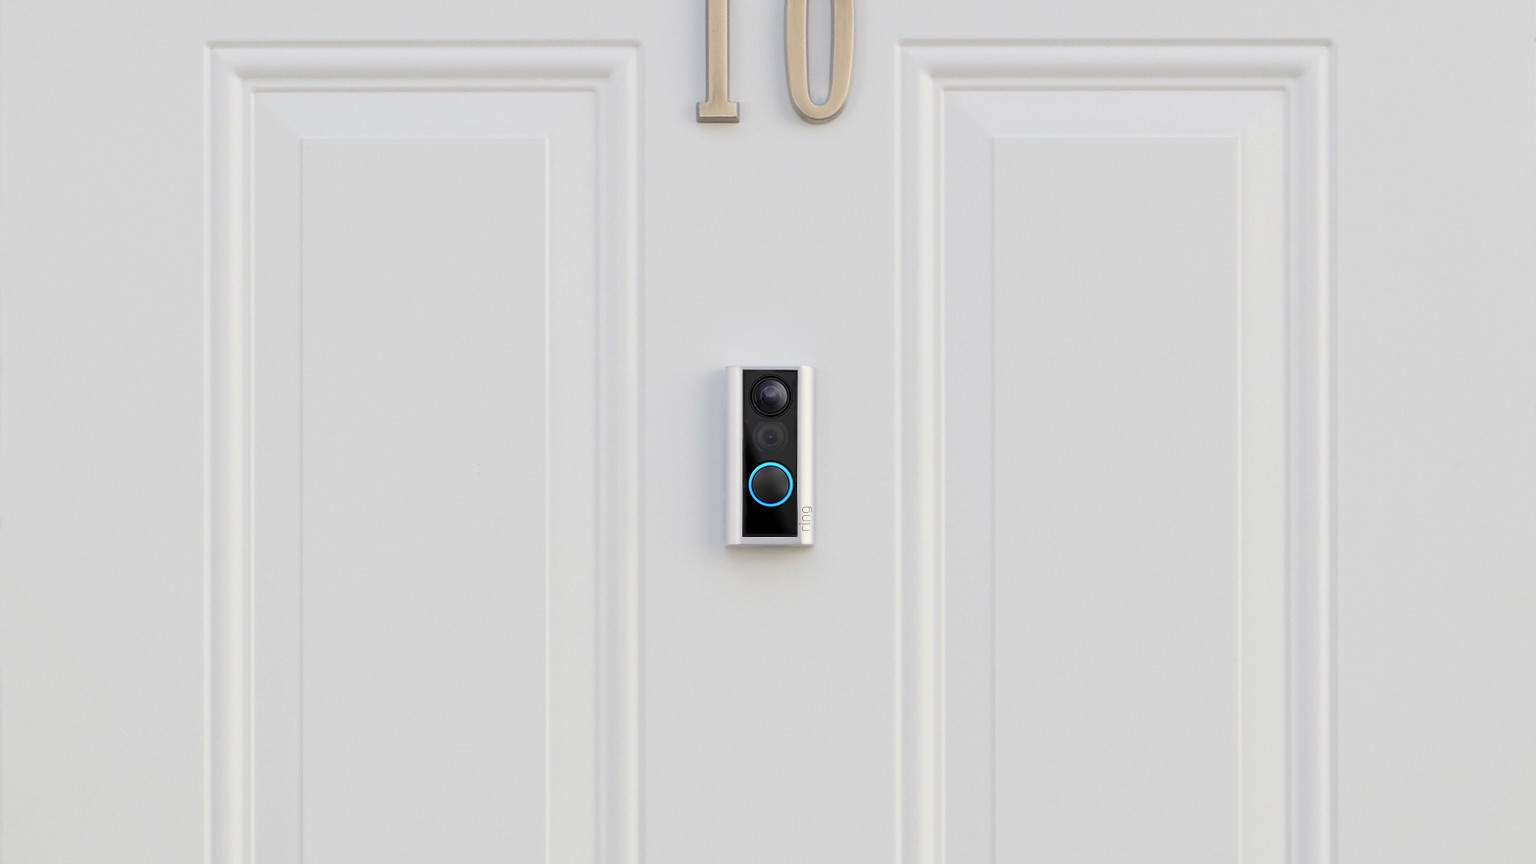 Ring Announce The New Easier To Install Video Doorbell